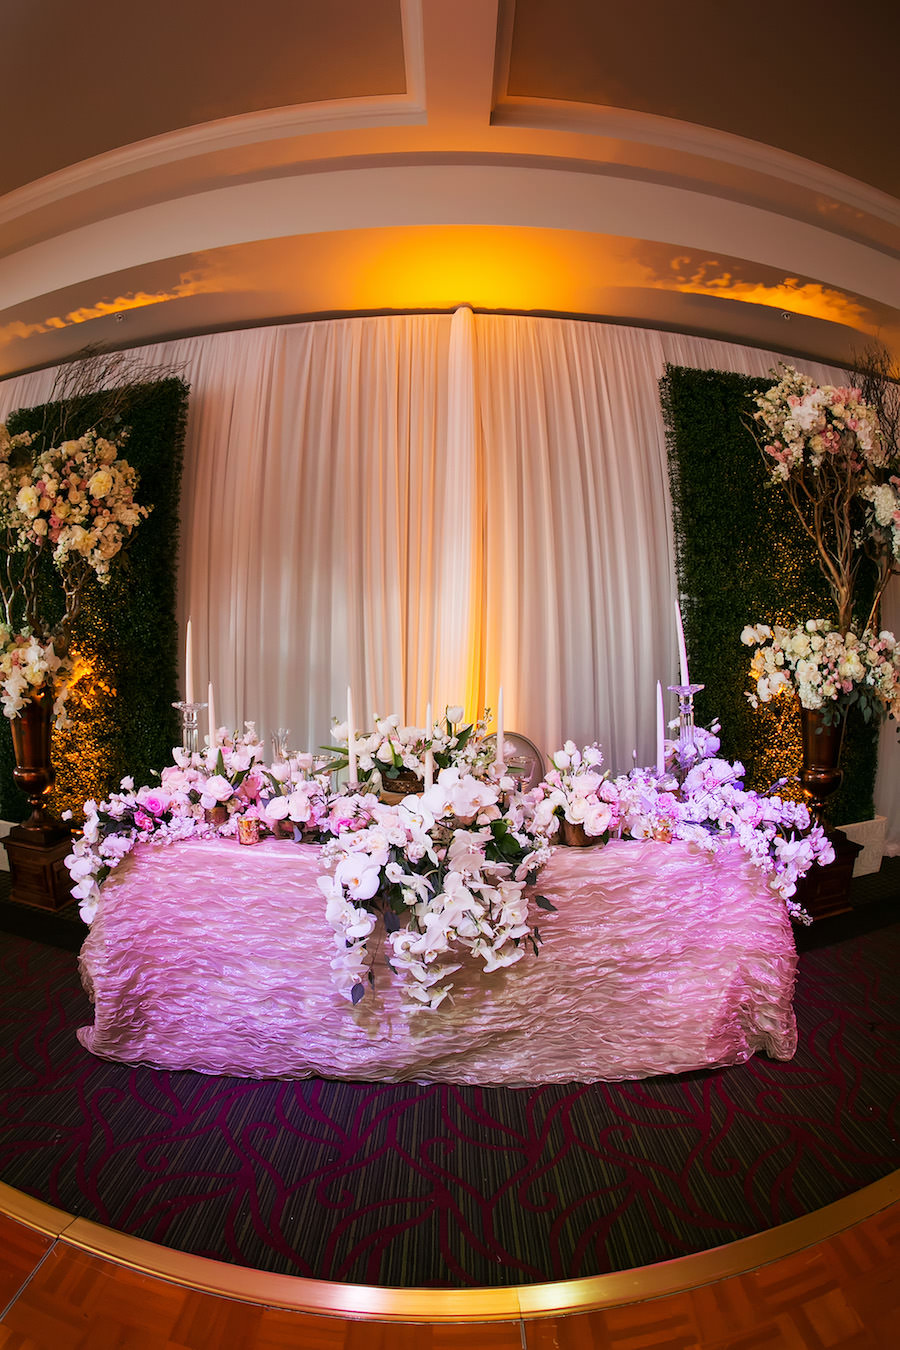 Orchid Flower Wedding Head Table Centerpieces with Candles on Champagne Specialty Linens at Downtown St. Petersburg Wedding Venue The Birchwood   Linen Rentals by Over The Top Linens   Photography by Limelight Photography